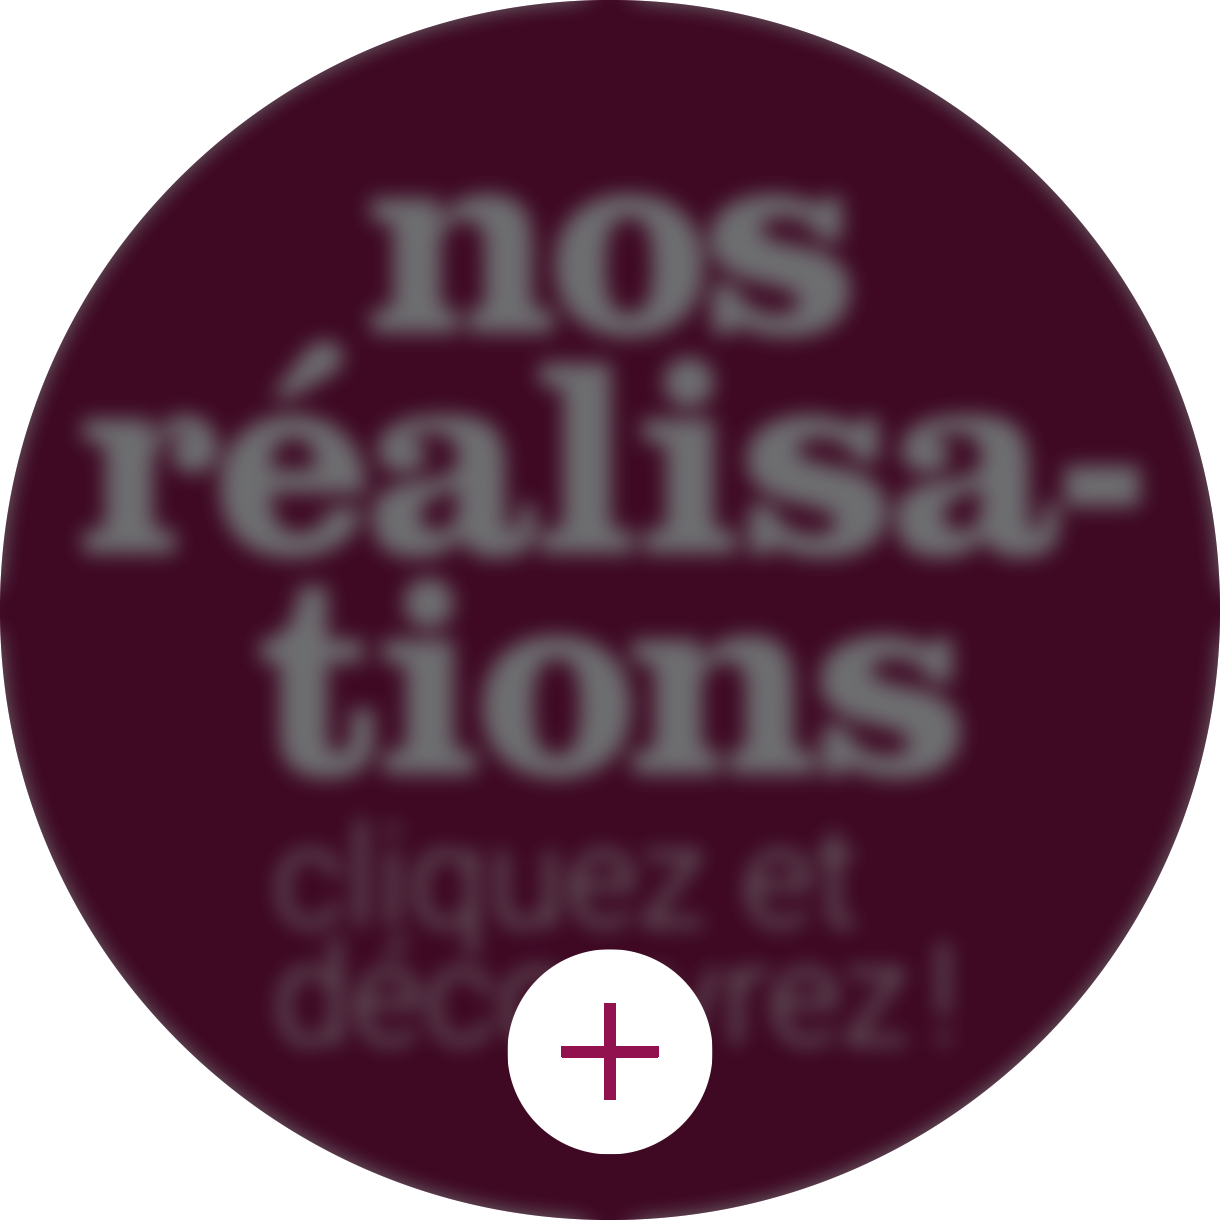 nos-realisations_1220x1220px